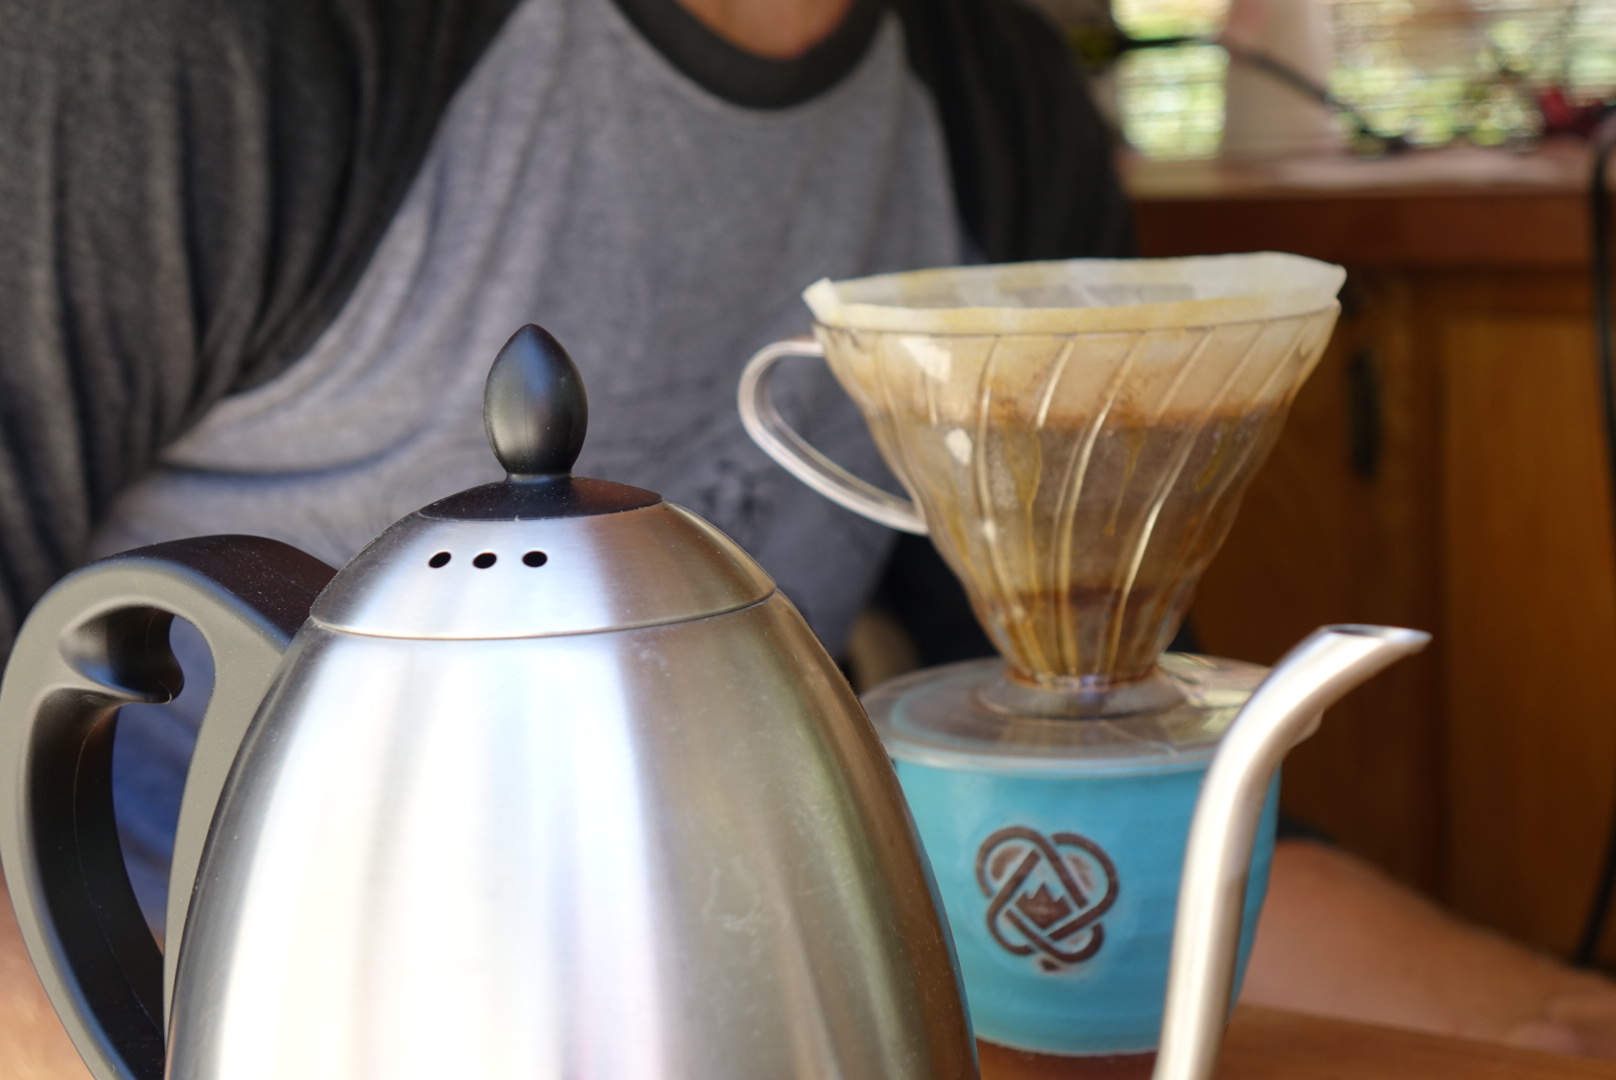 INTERESTED IN TRYING CARABINER COFFEE BEANS? - YOU CAN BUY ONLINE!